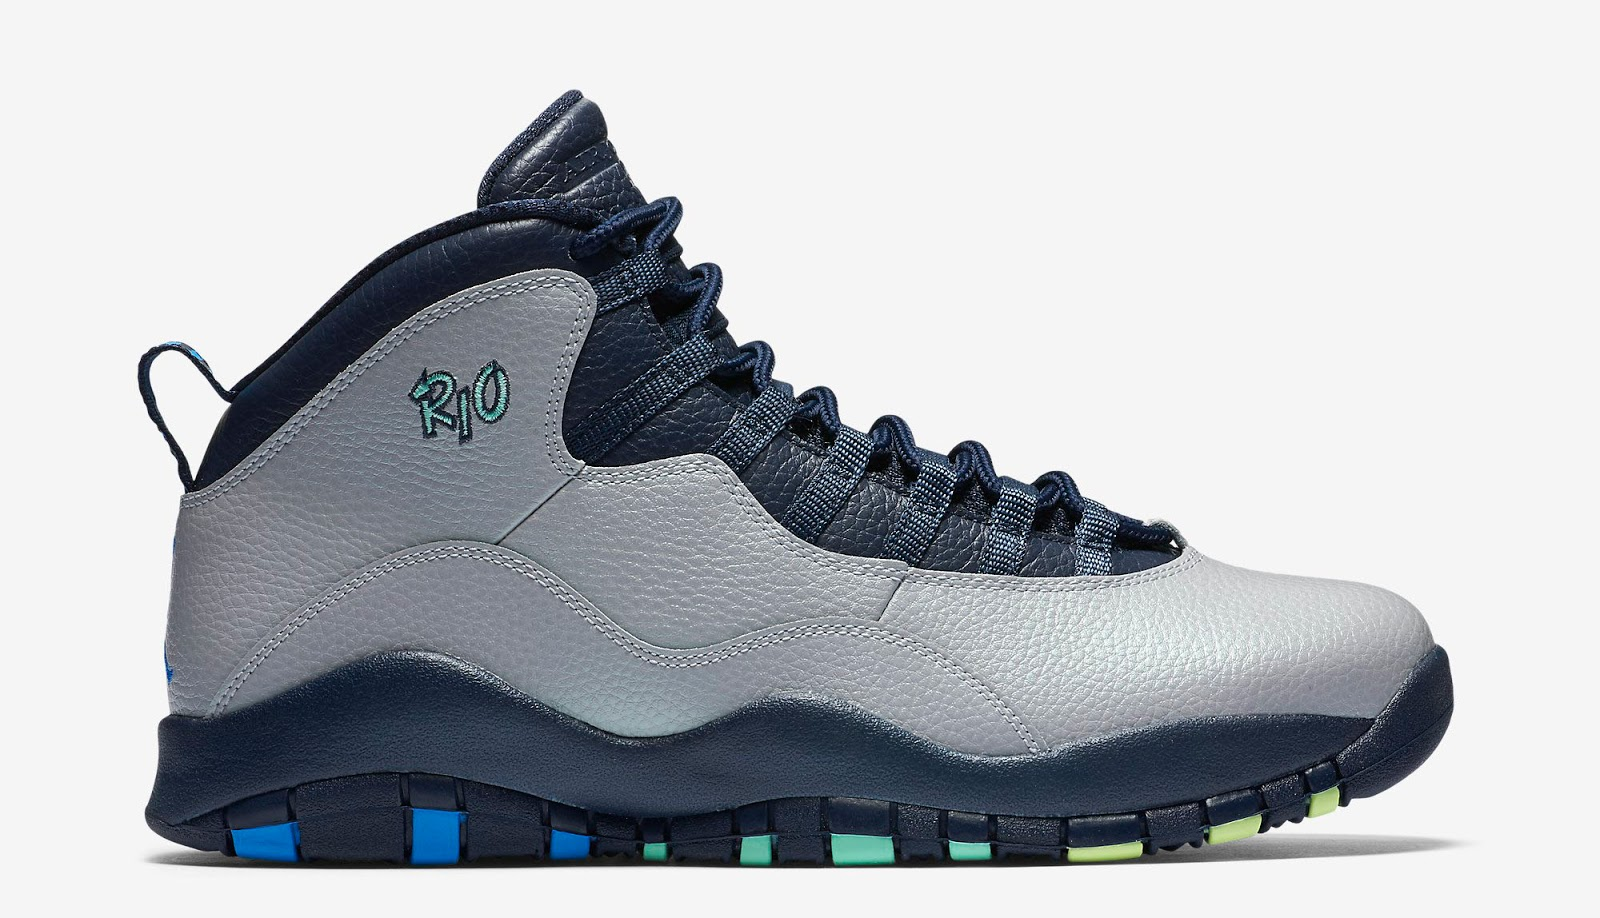 a8920a0a7caa6f ireland air jordan retro 10 green blue f3fdd a89ca